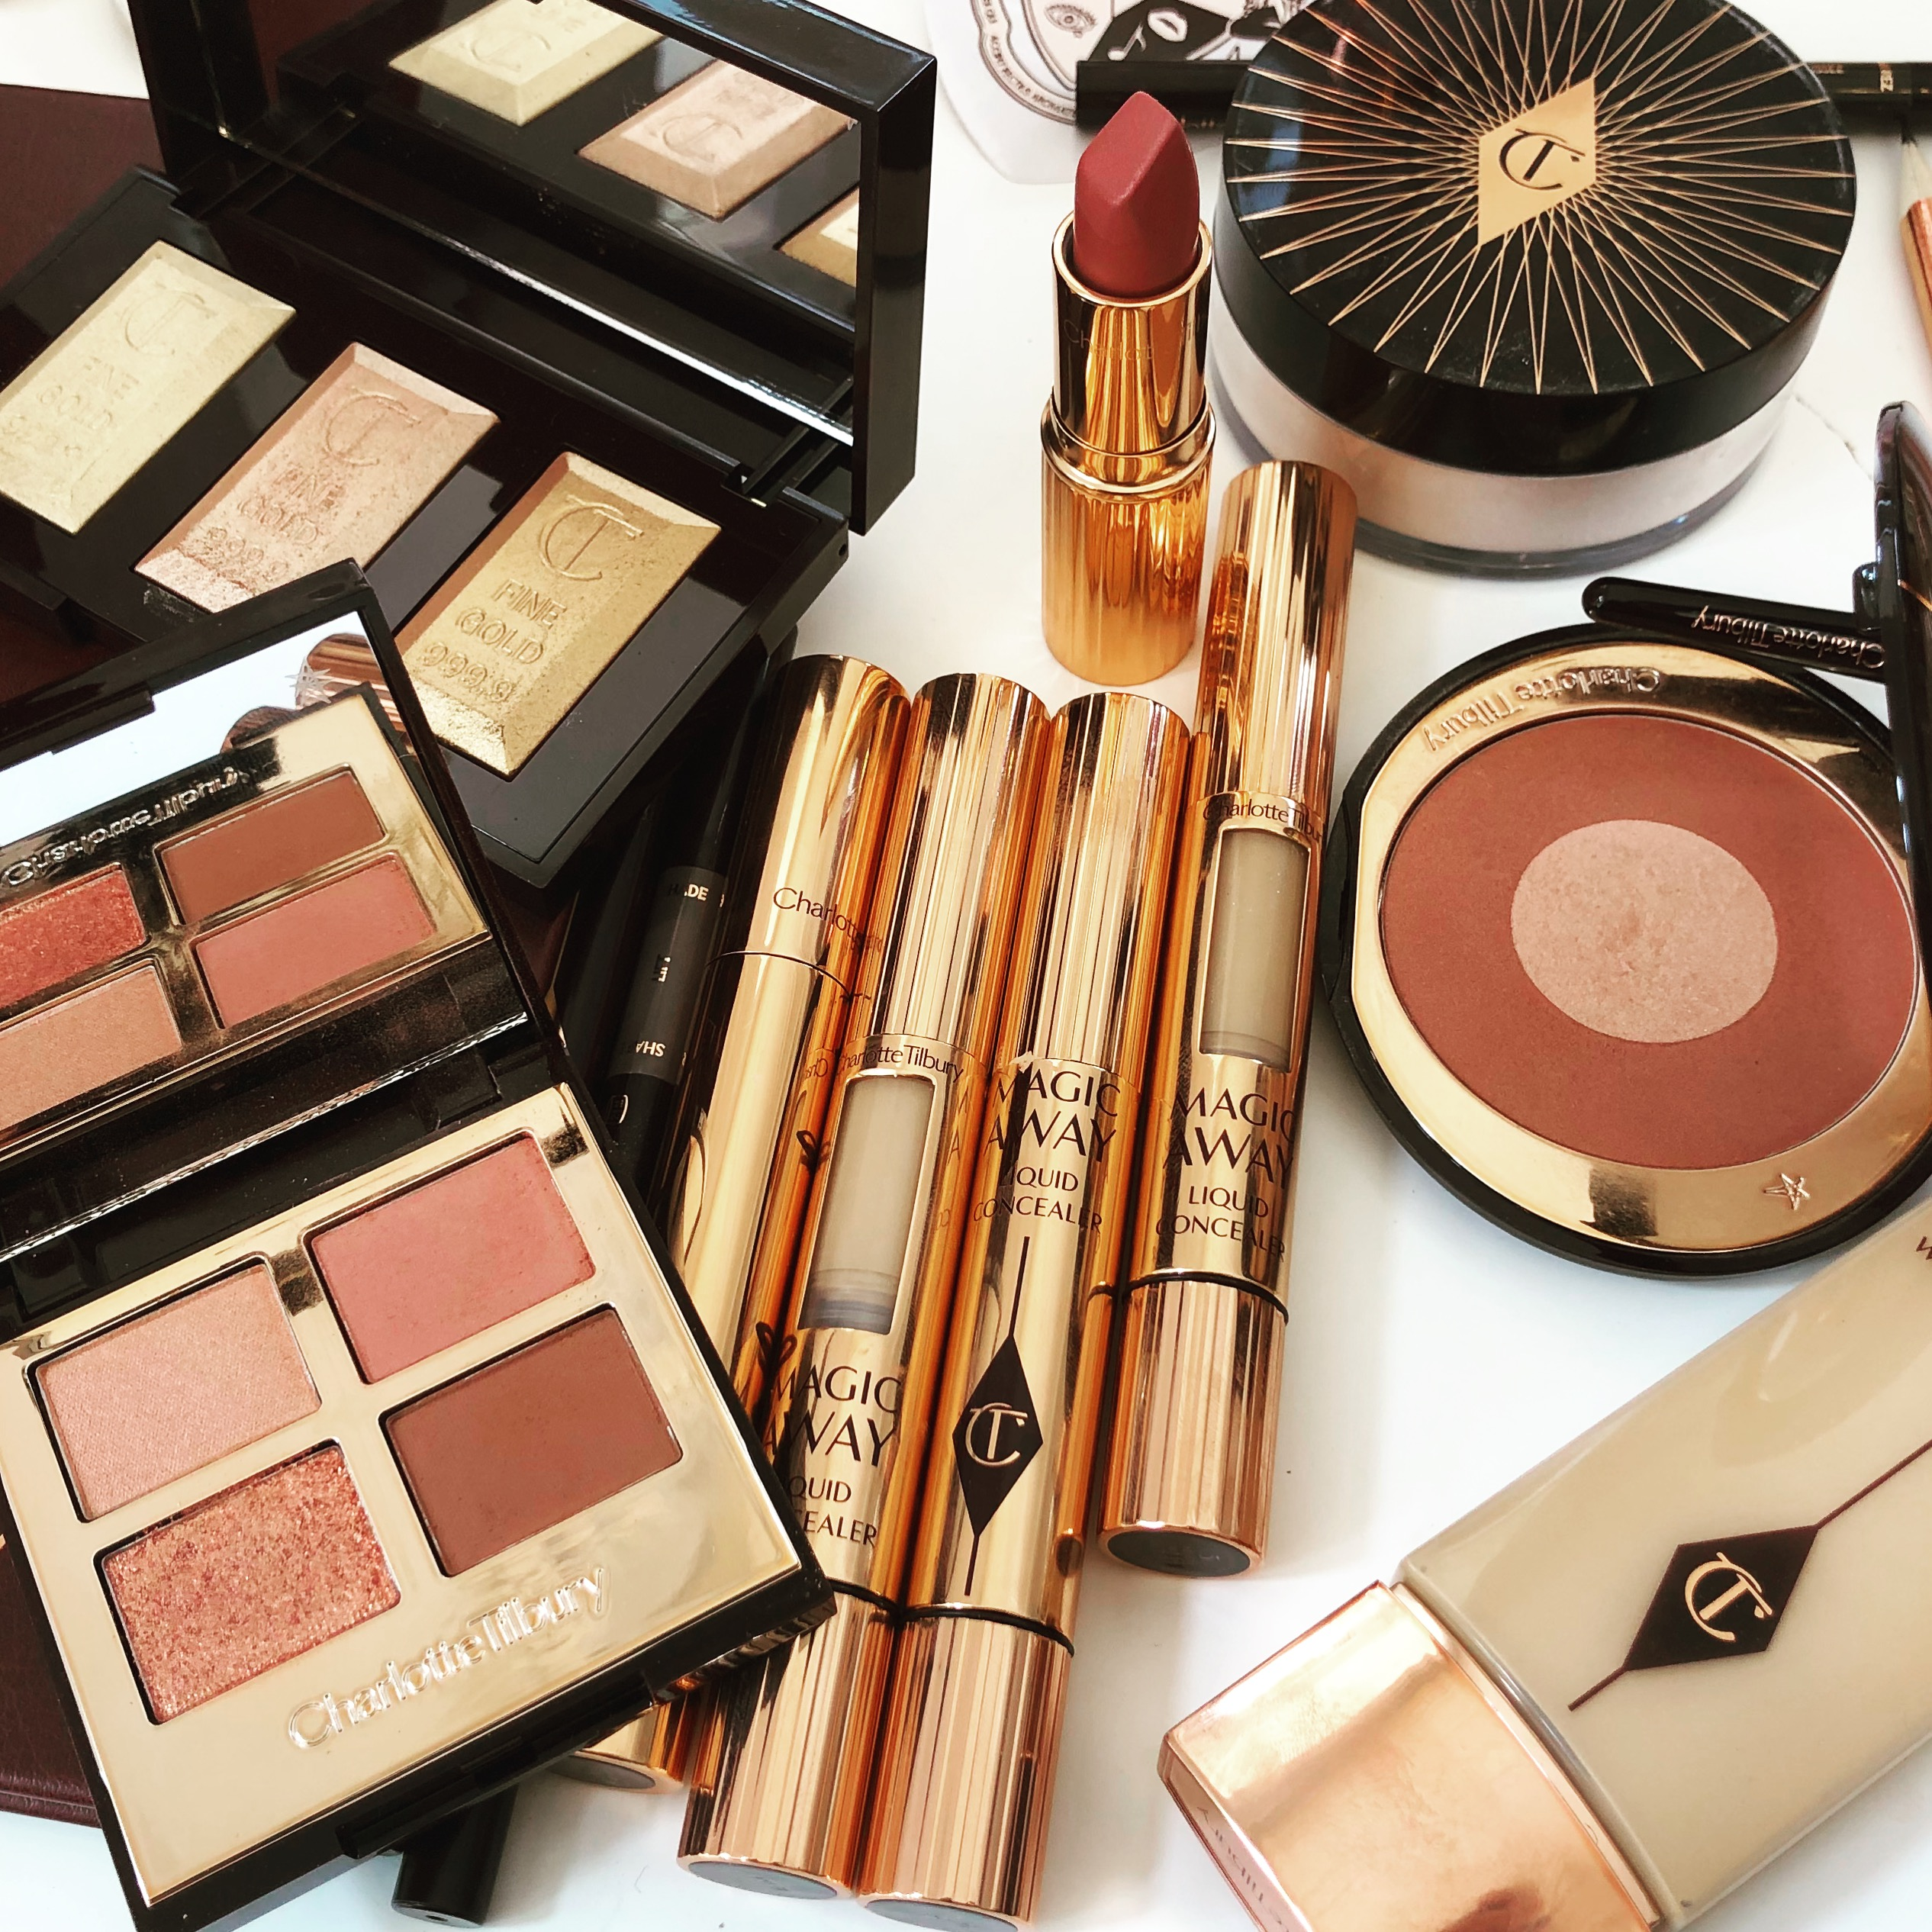 Charlotte Tilbury Pillow Talk Range